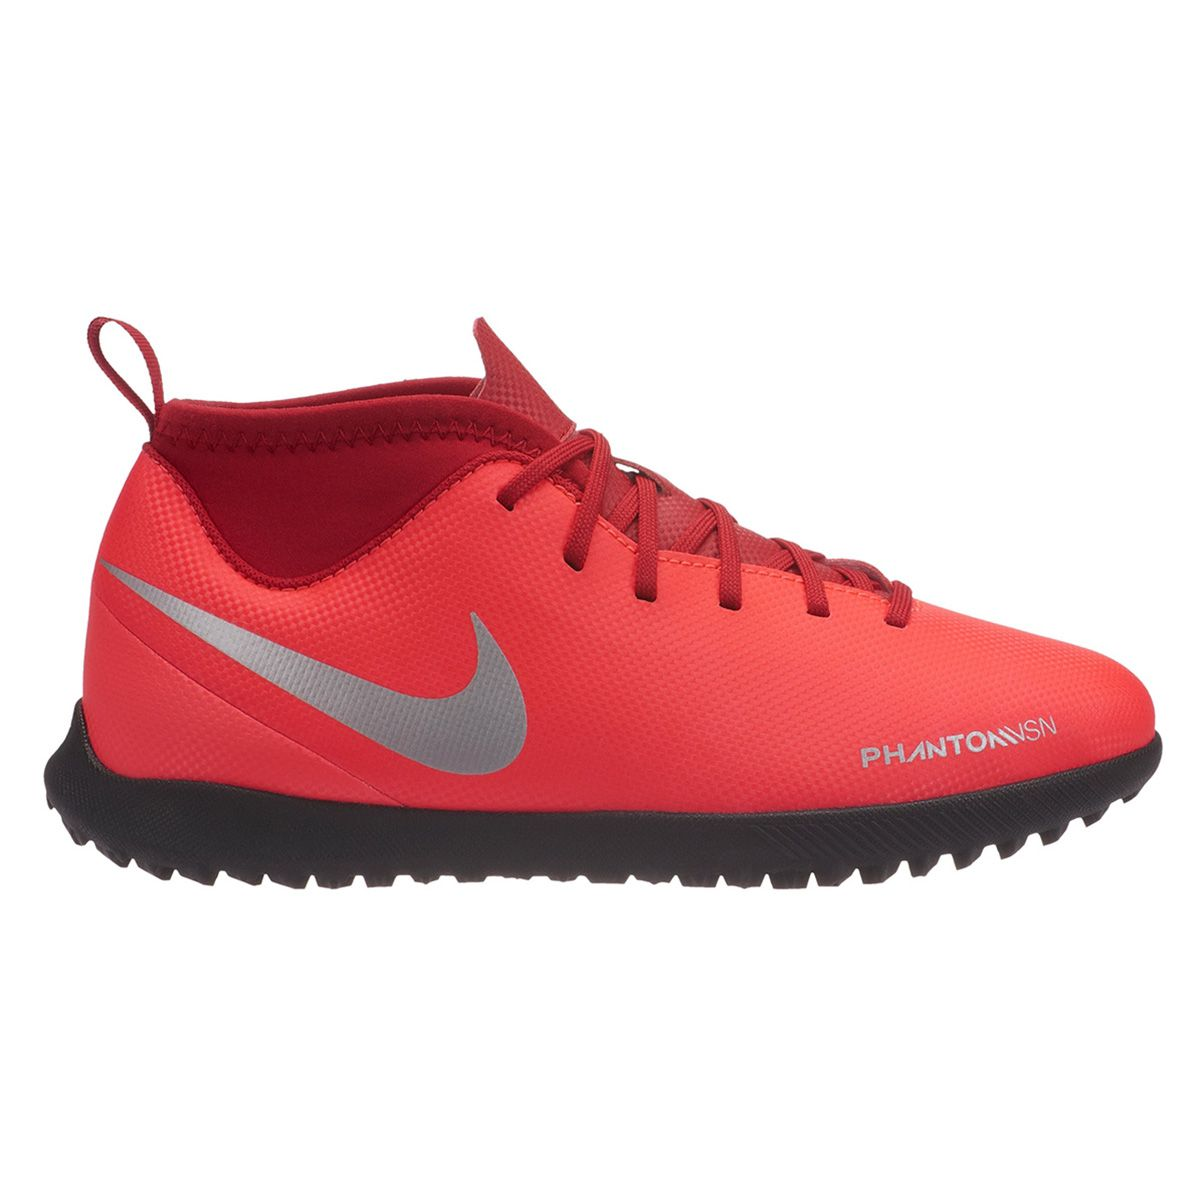 Chuteira Society Infantil Nike Phantom VSN Club DF TF